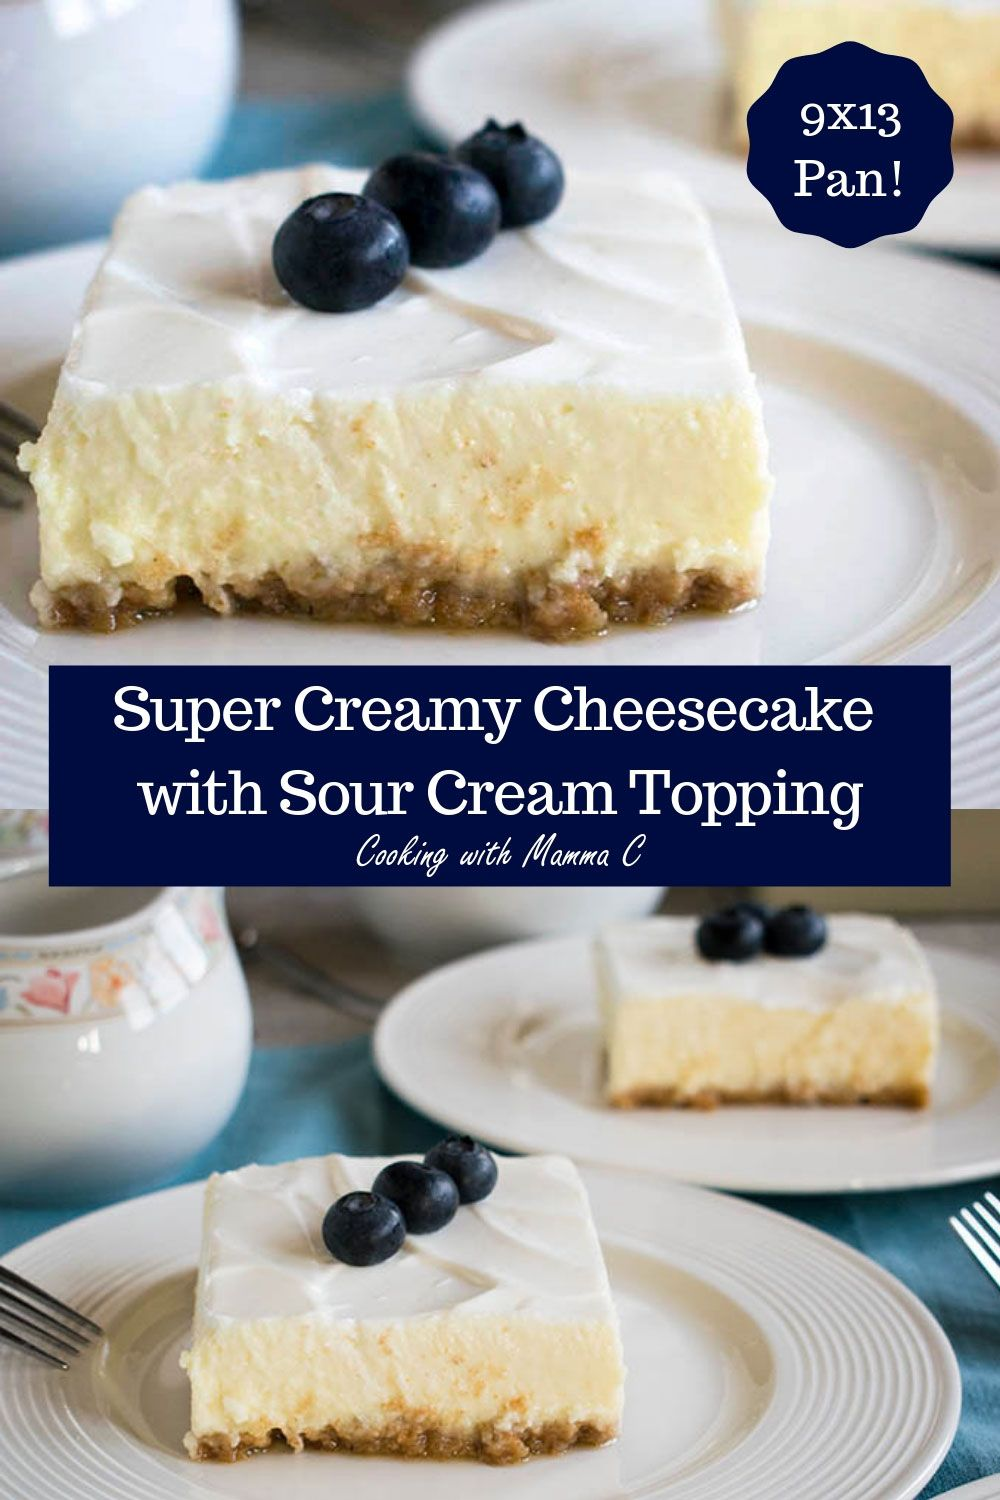 You Have To Try Mom S Cheesecake With Sour Cream Topping It S Baked In A 9x13 Pan And Ha Sour Cream Cheesecake Creamy Cheesecake Recipe 9x13 Cheesecake Recipe